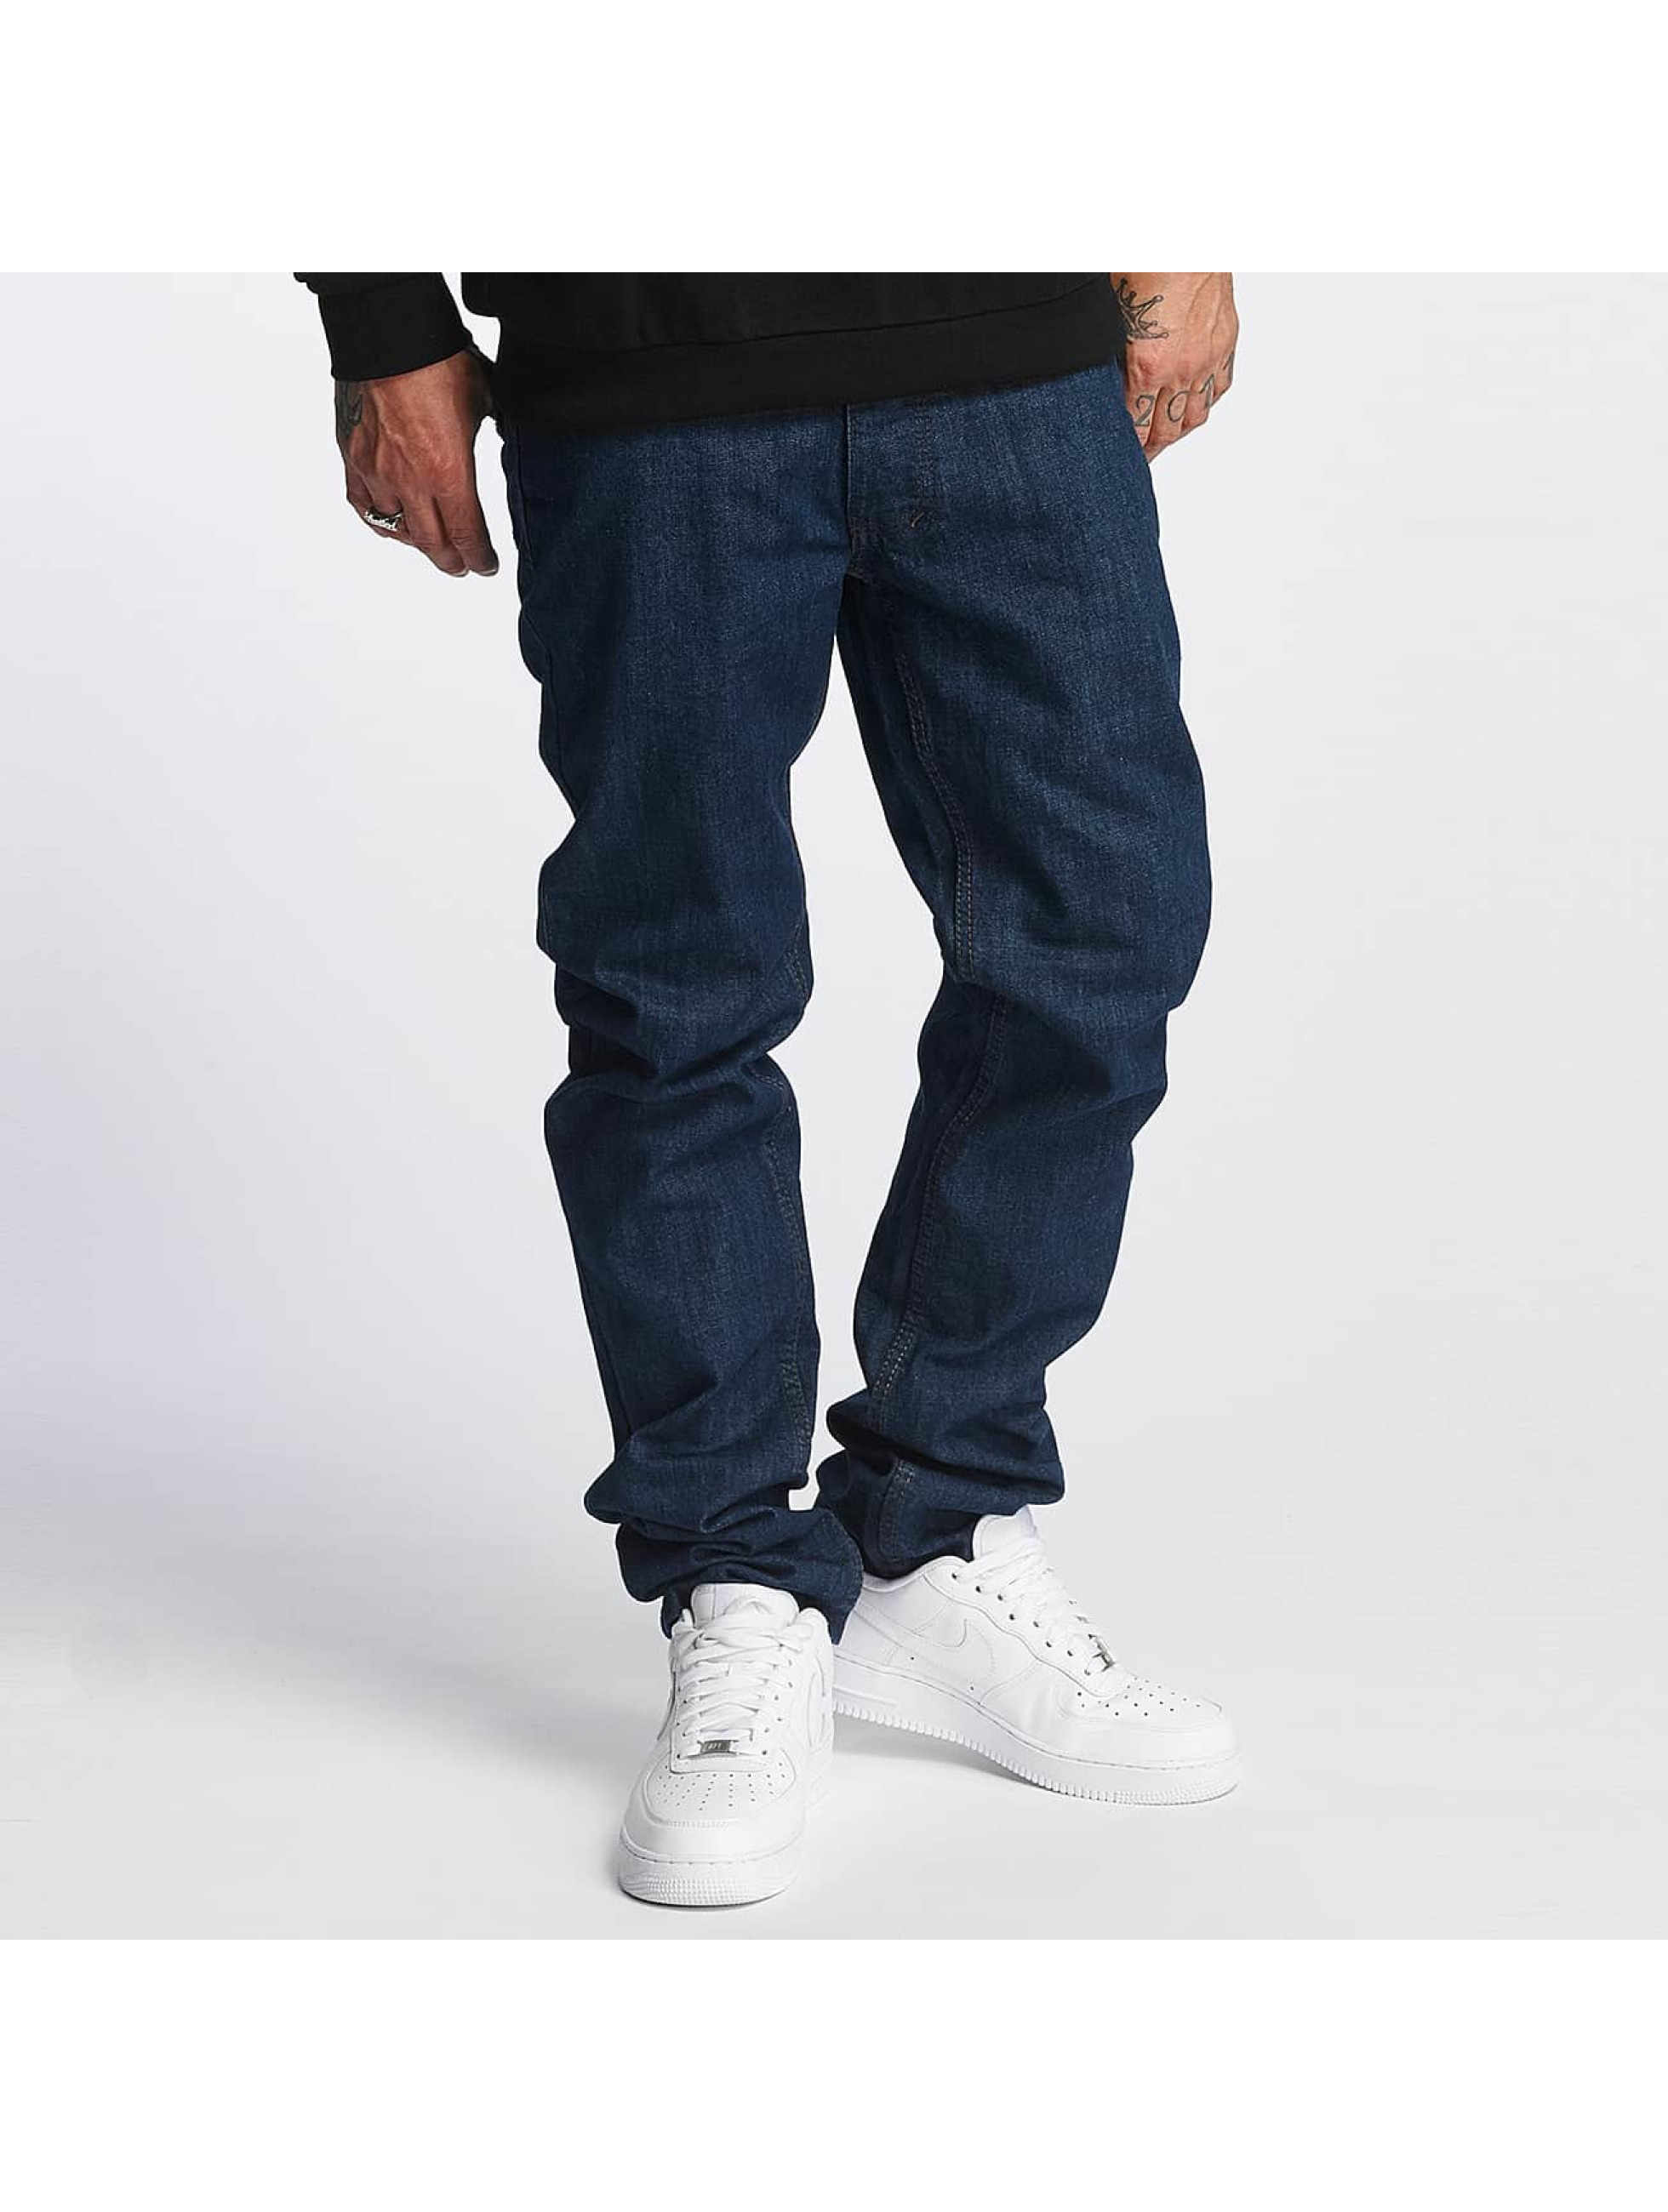 Rocawear / Straight Fit Jeans Relax in blue W 38